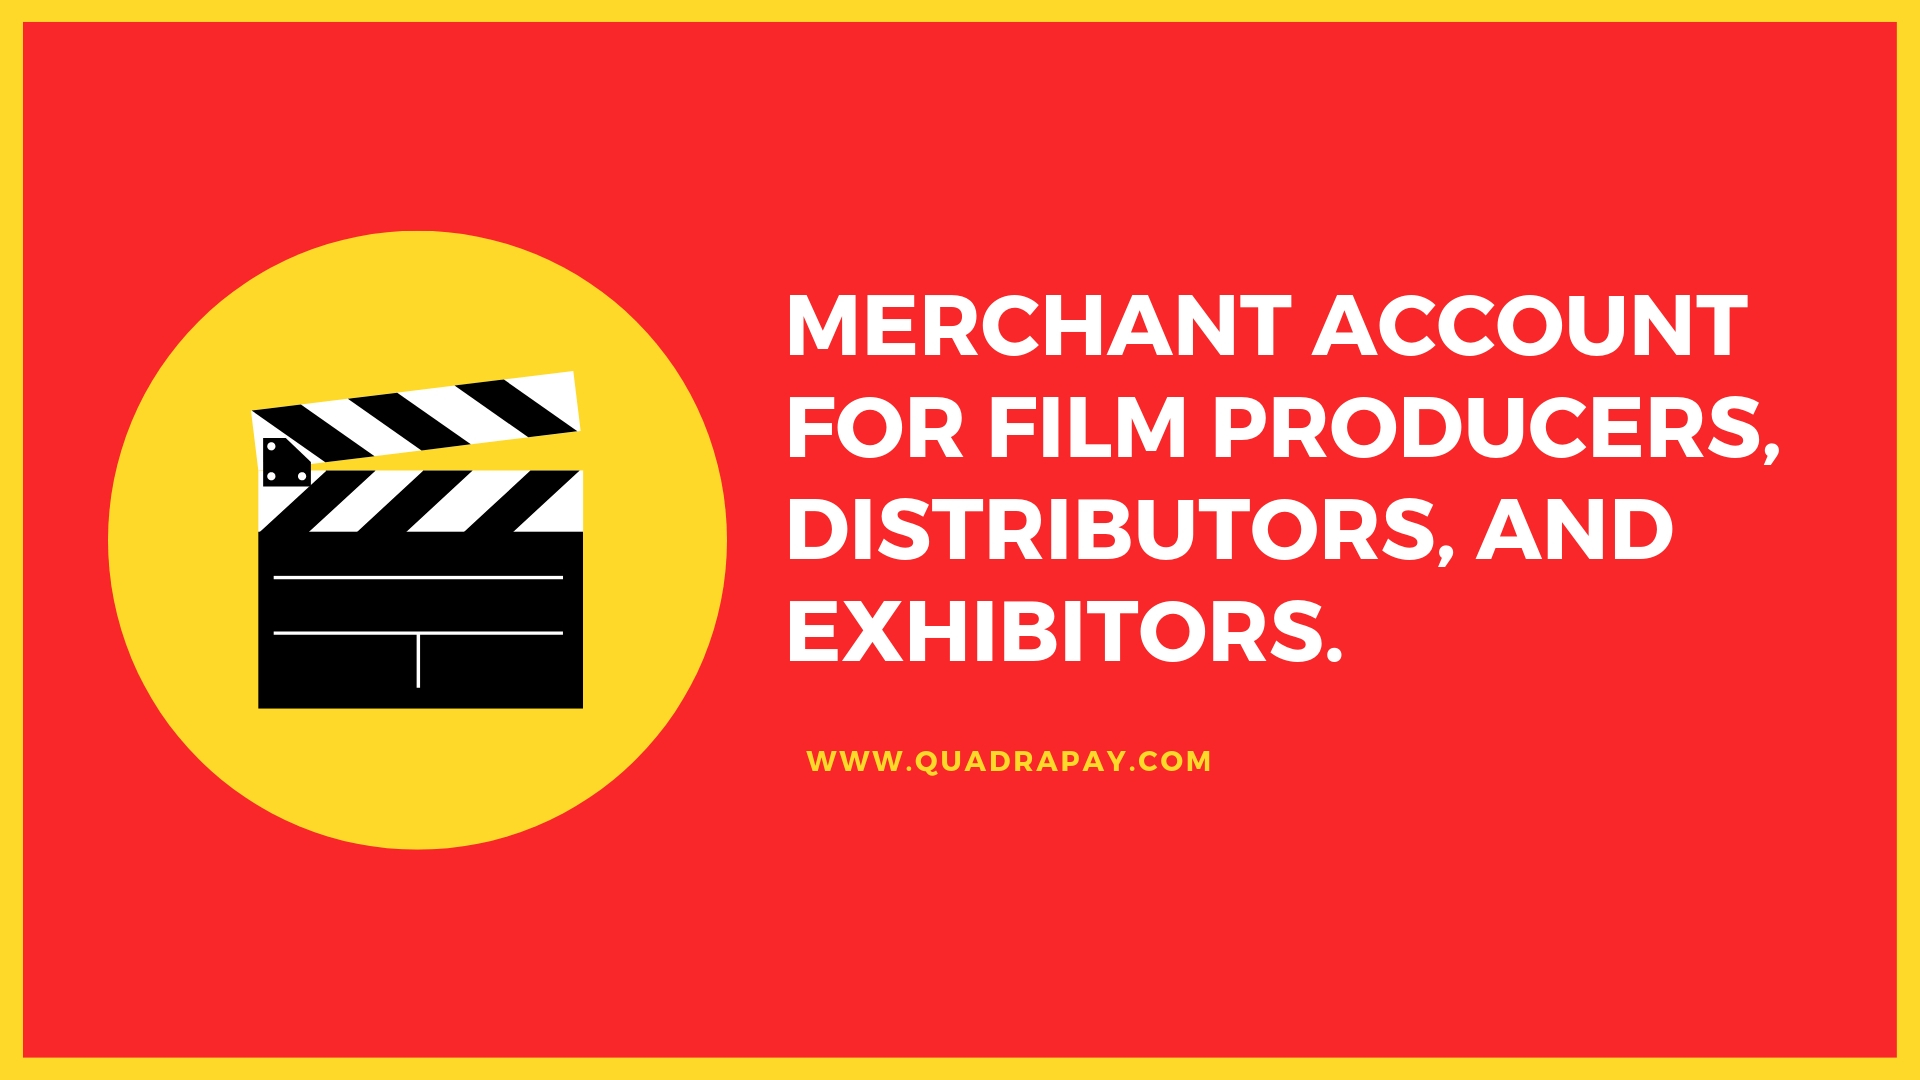 Merchant Account for Film producers, Distributors, and Exhibitors.